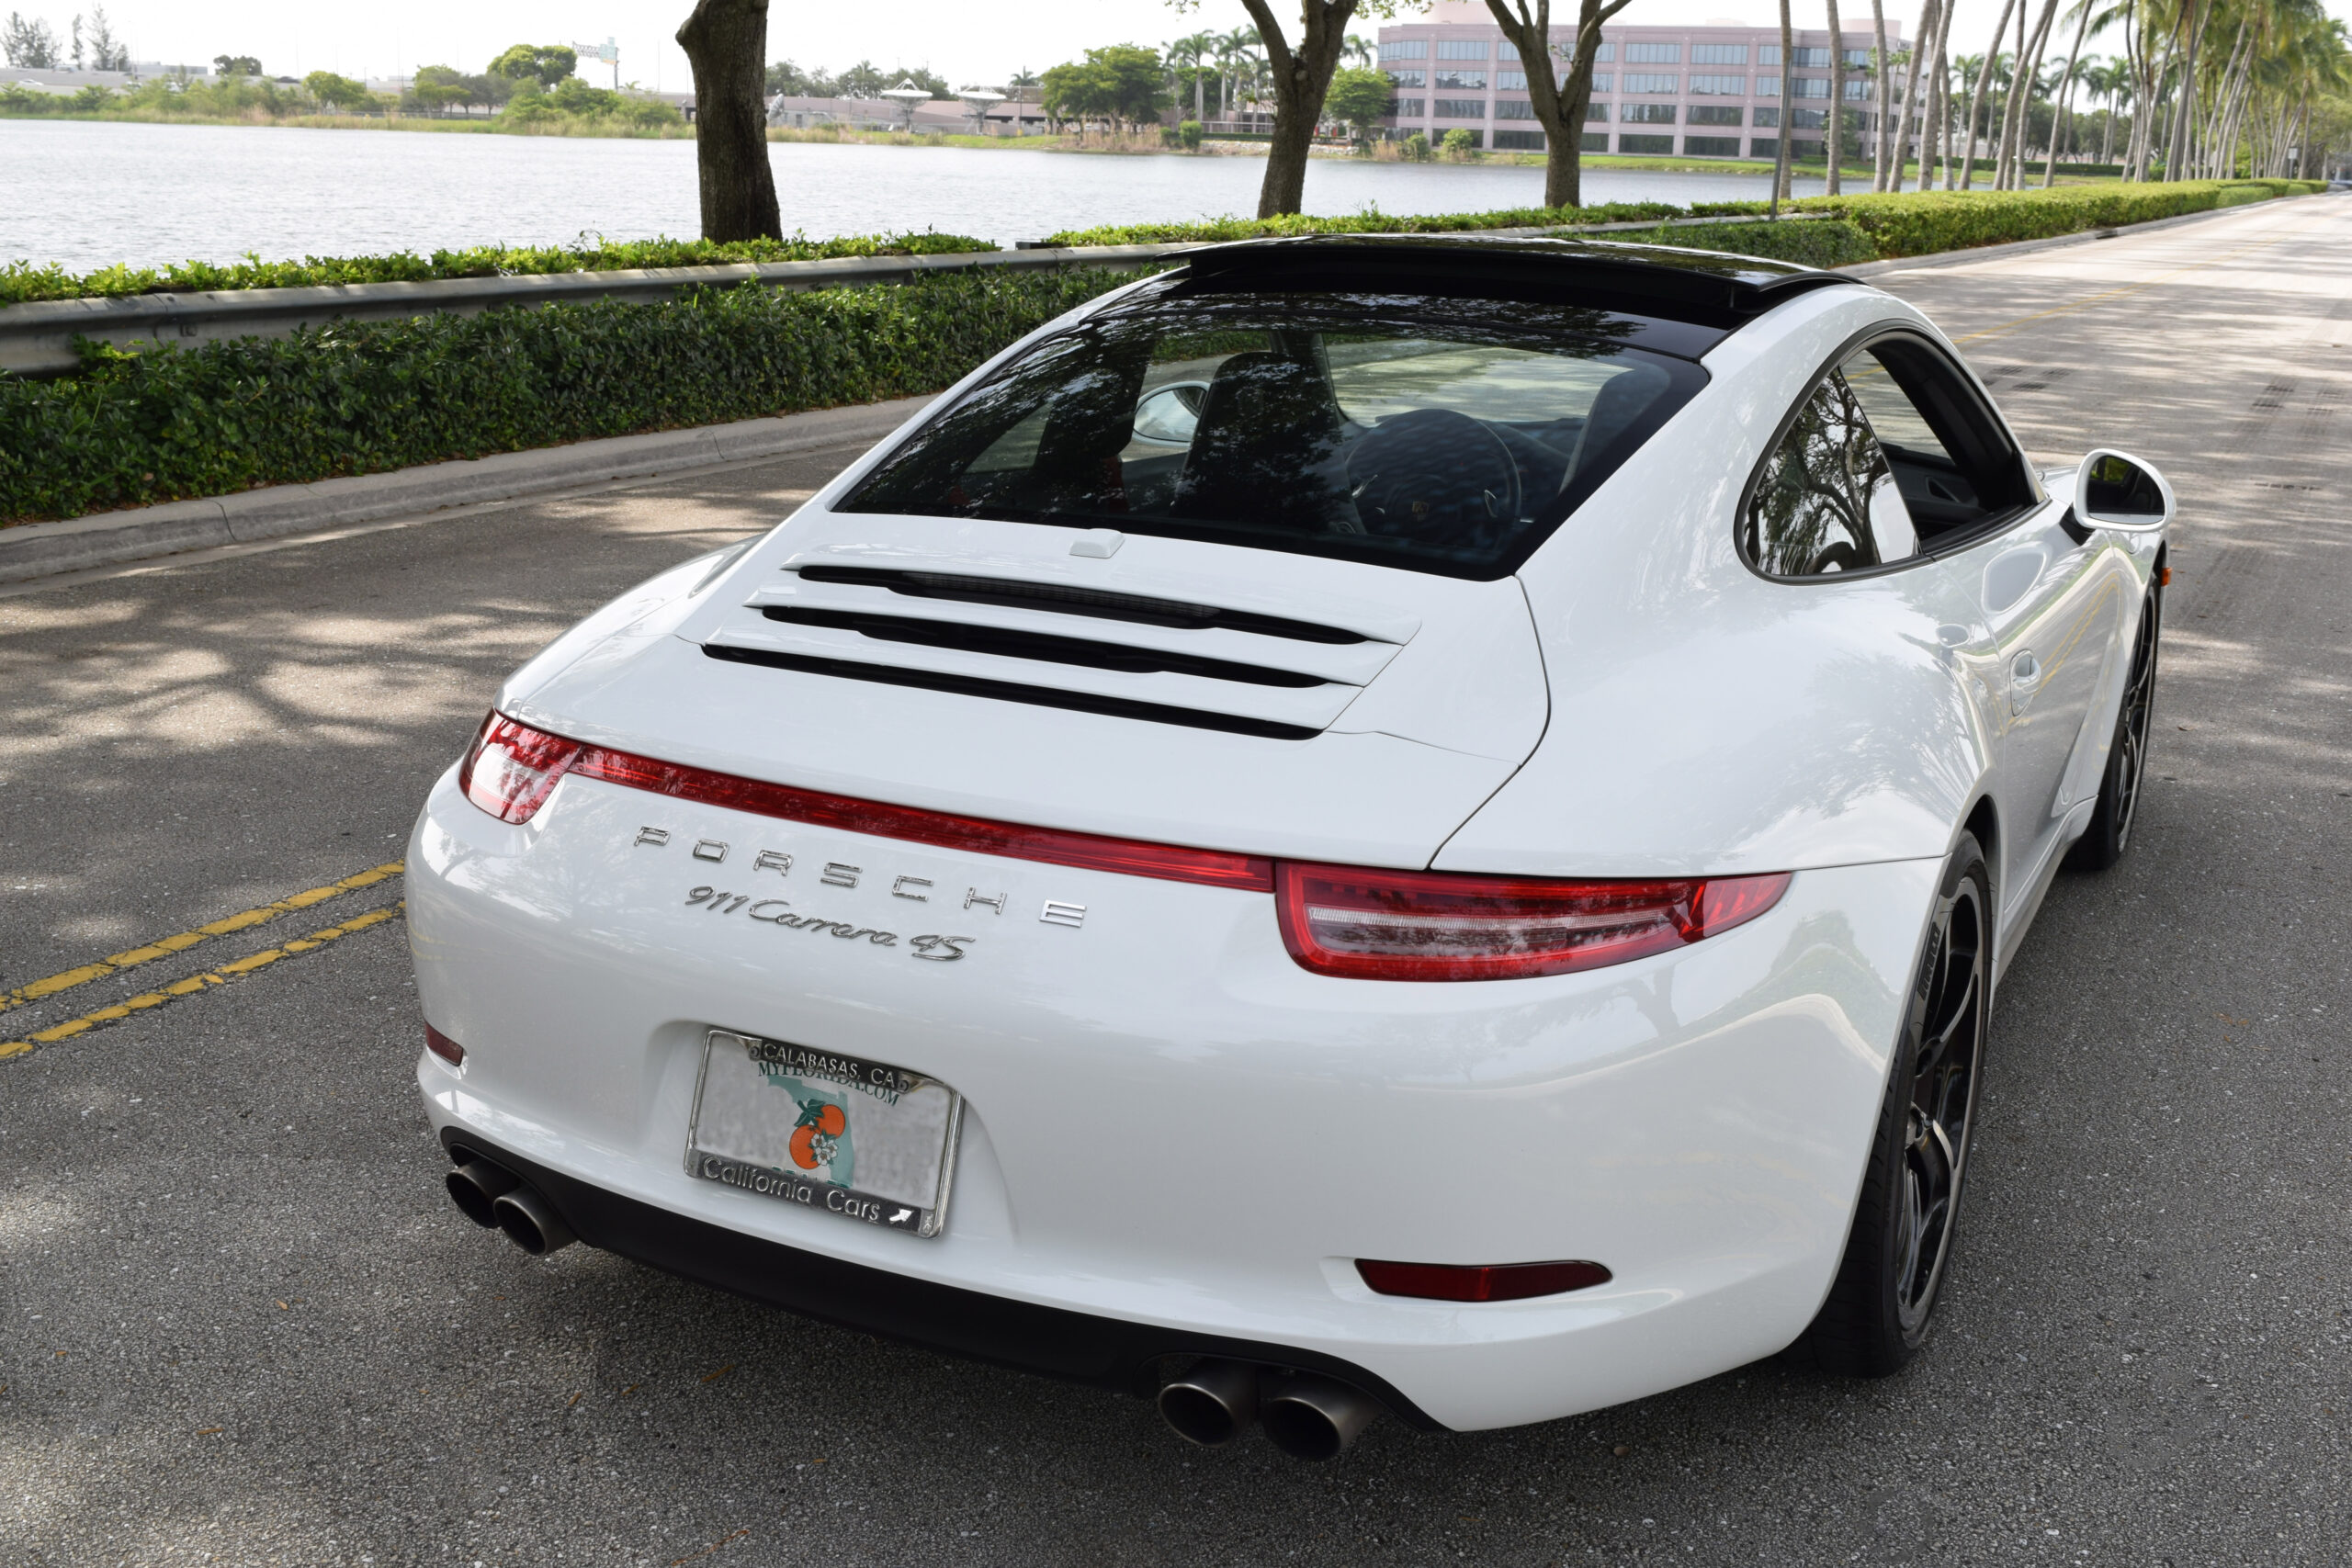 2014 Carrera 4S, 1 owner, just 17K miles, Original Window Sticker and Bill of Sale, dealer serviced with records